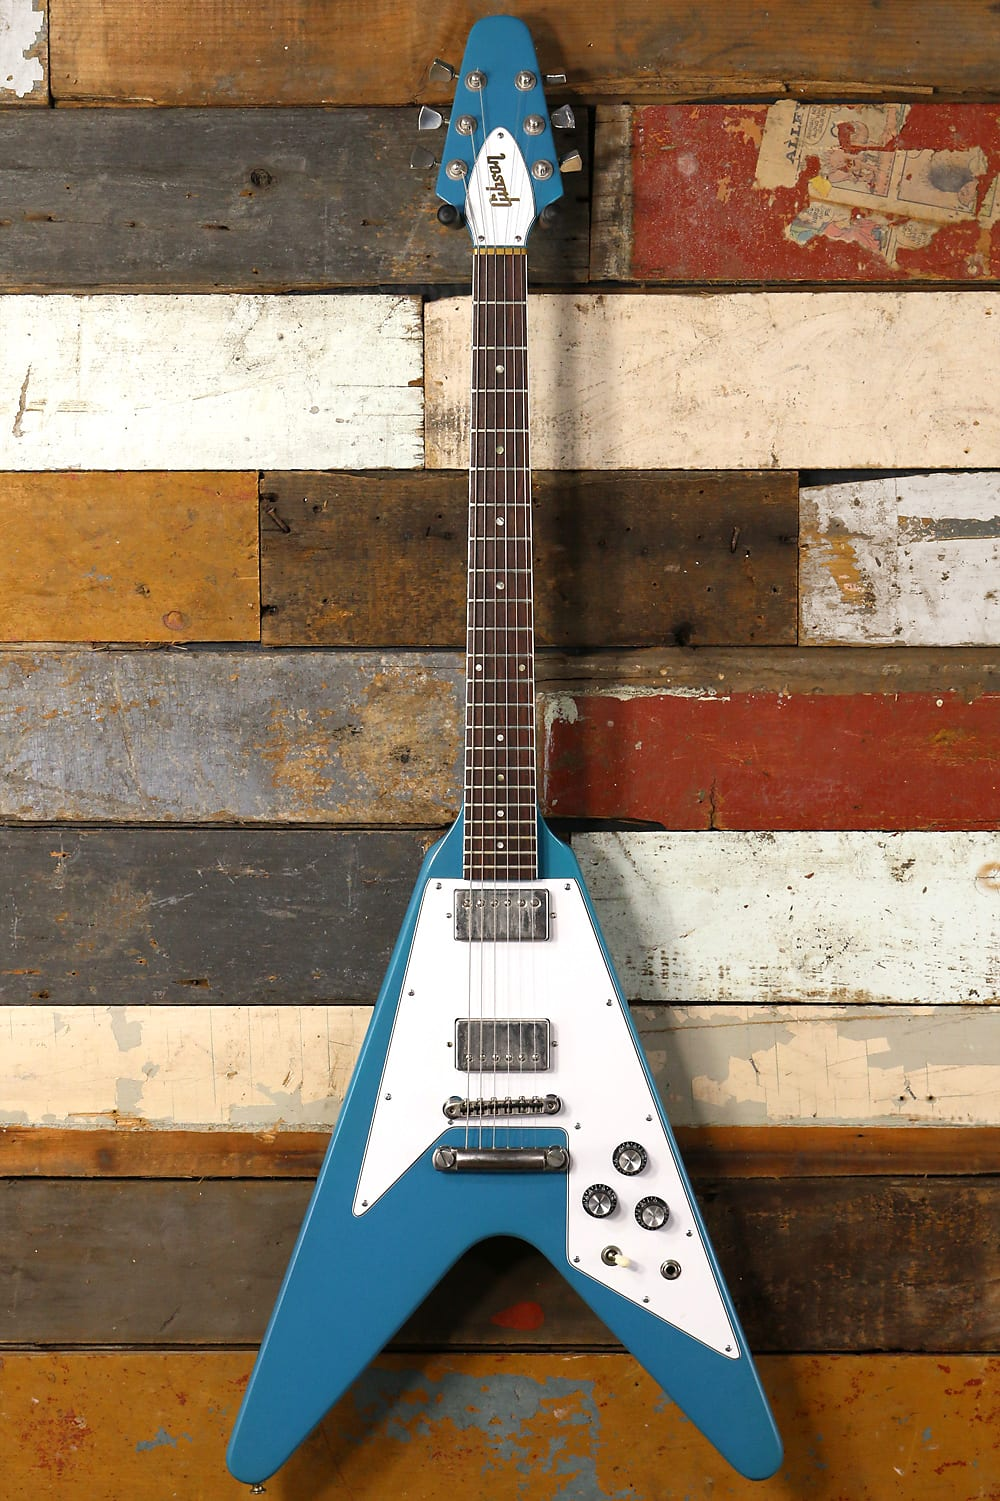 Buy New Used And Vintage Guitars Amps Synth Modules Effects Electric Guitar String Diagram Ebay Gig Bag 1981 Gibson Flying V Blue Refin